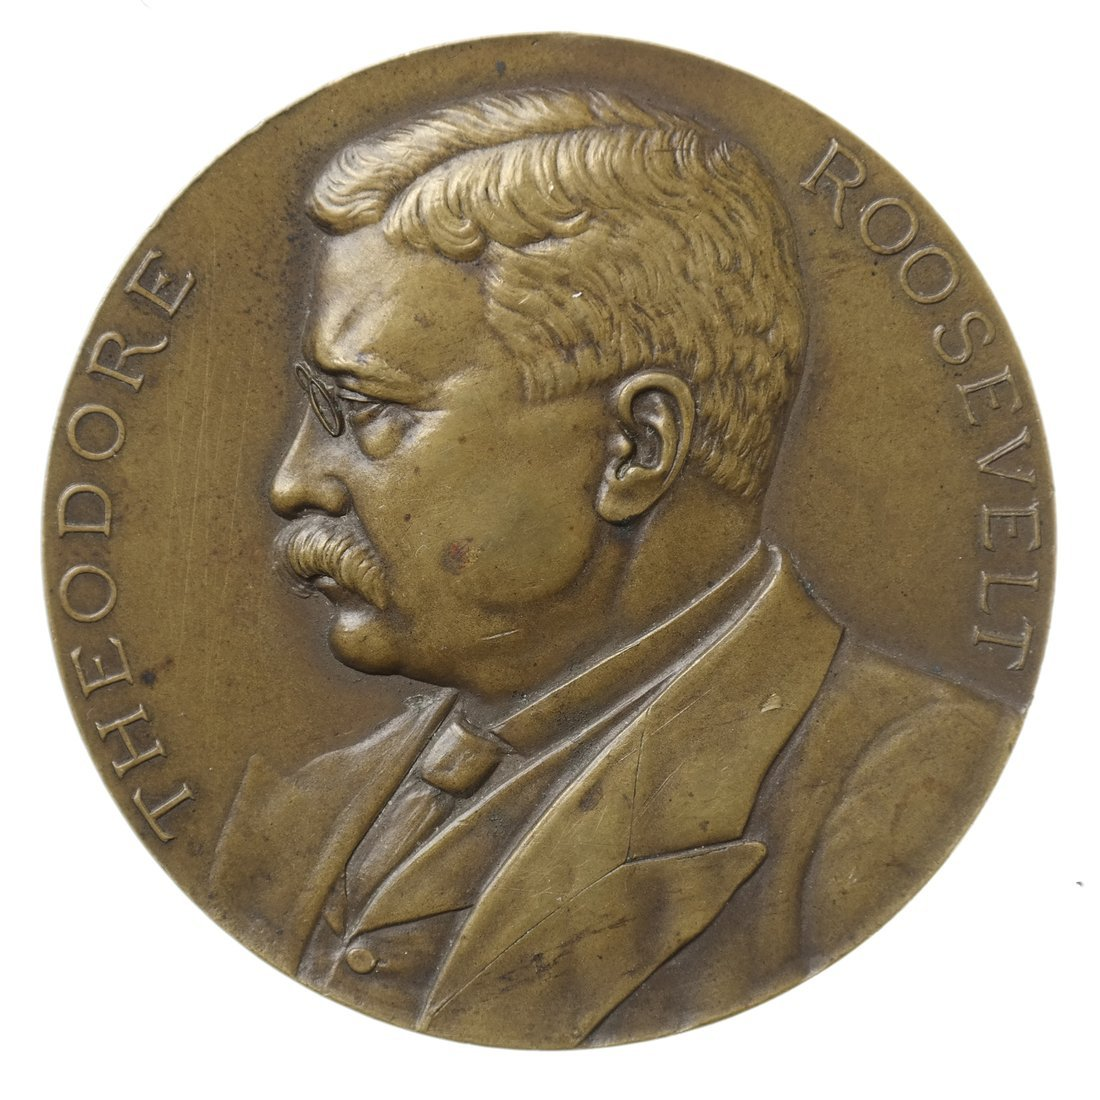 Theodore Roosevelt Inaugural Medal, 1905.